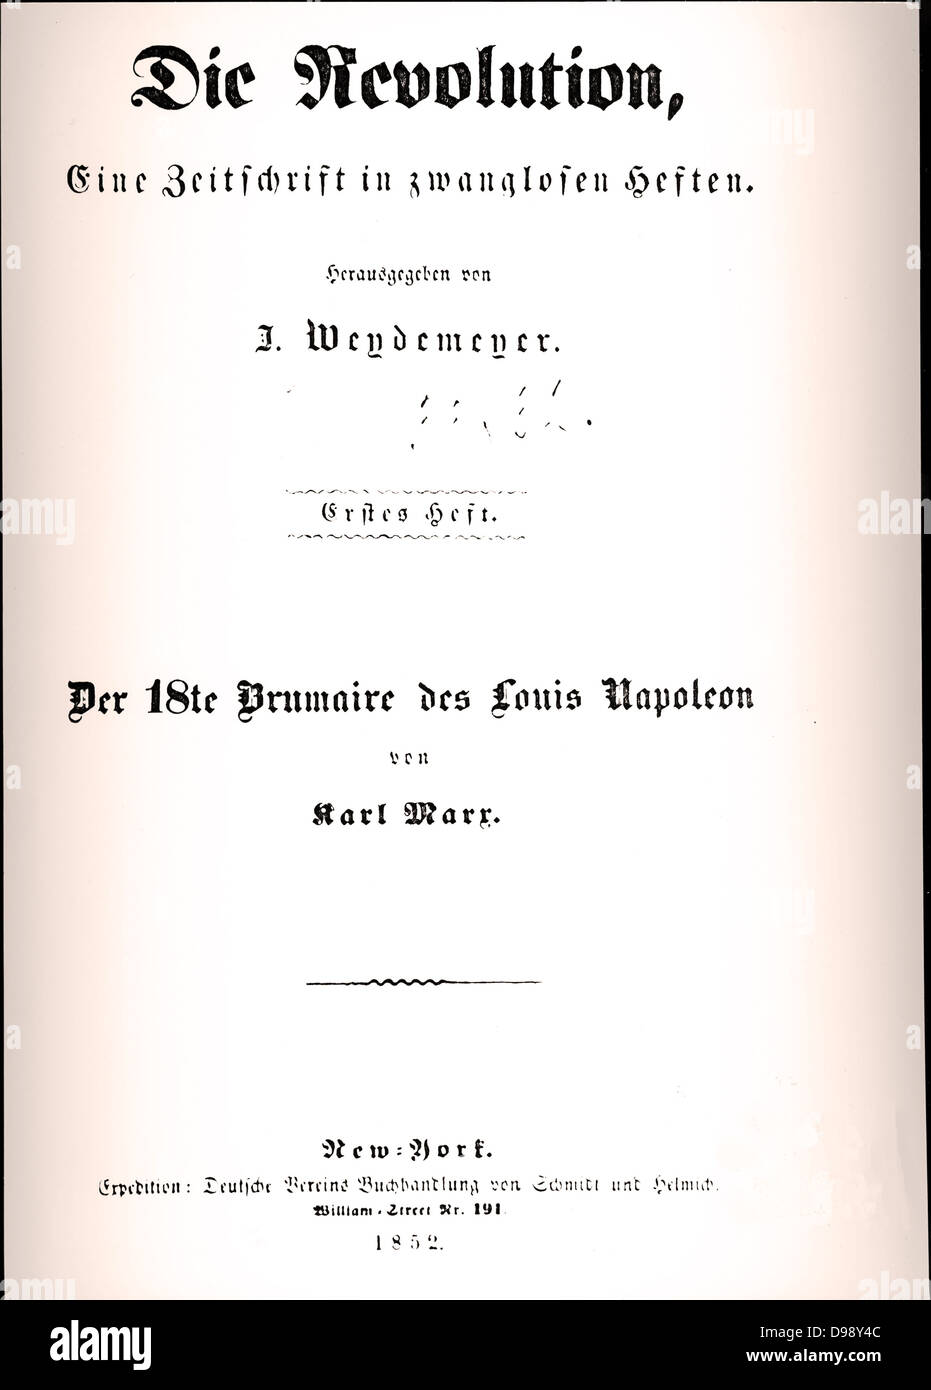 Title page from Karl Marx book 'Die revolution 1852 - Stock Image